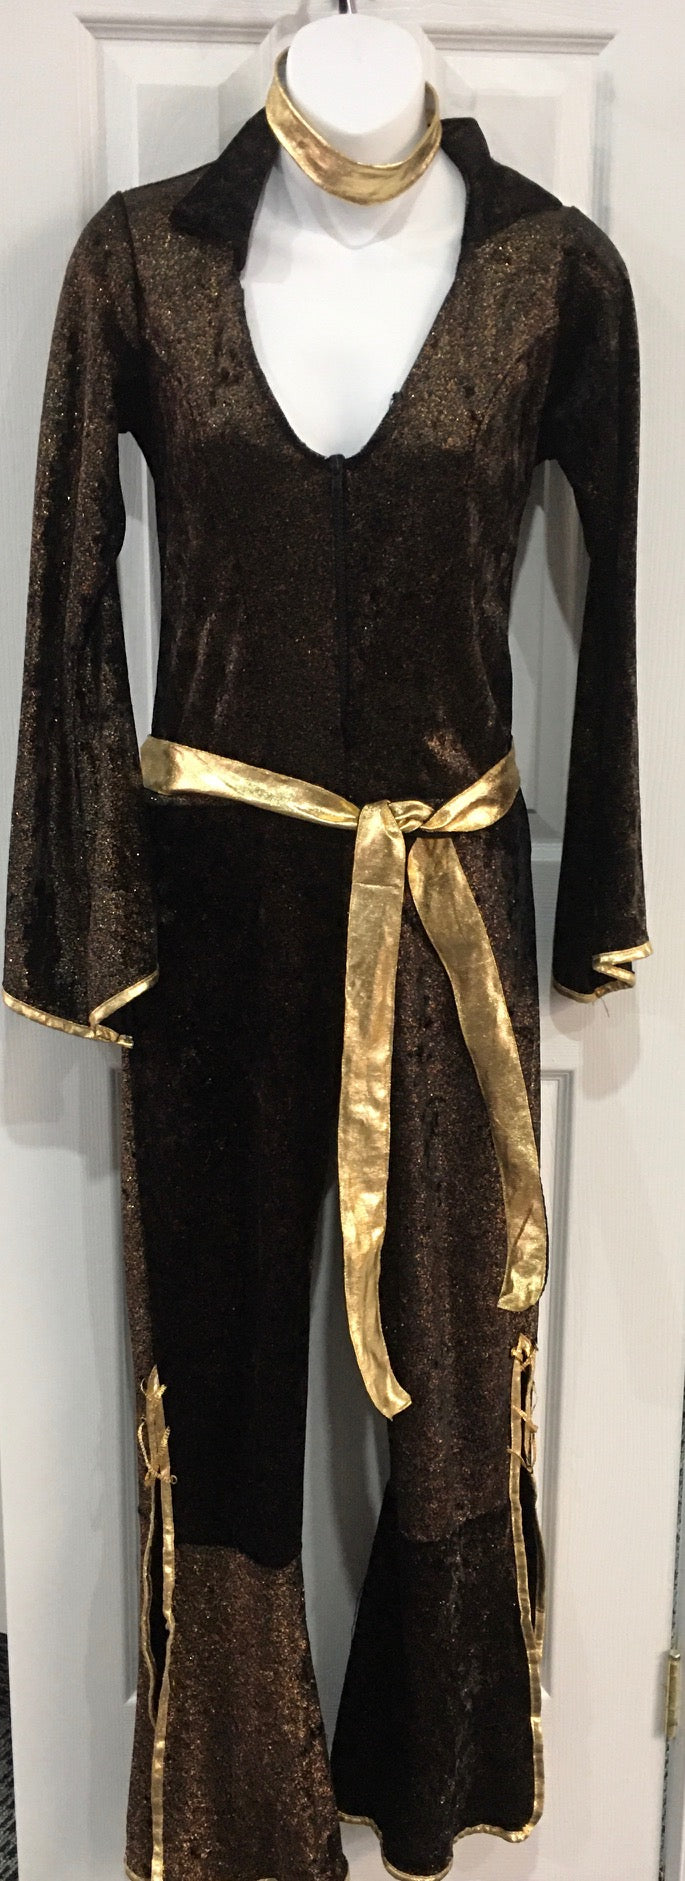 COSTUME RENTAL - X276 1970's Jumpsuit, Bronze - 3 piece